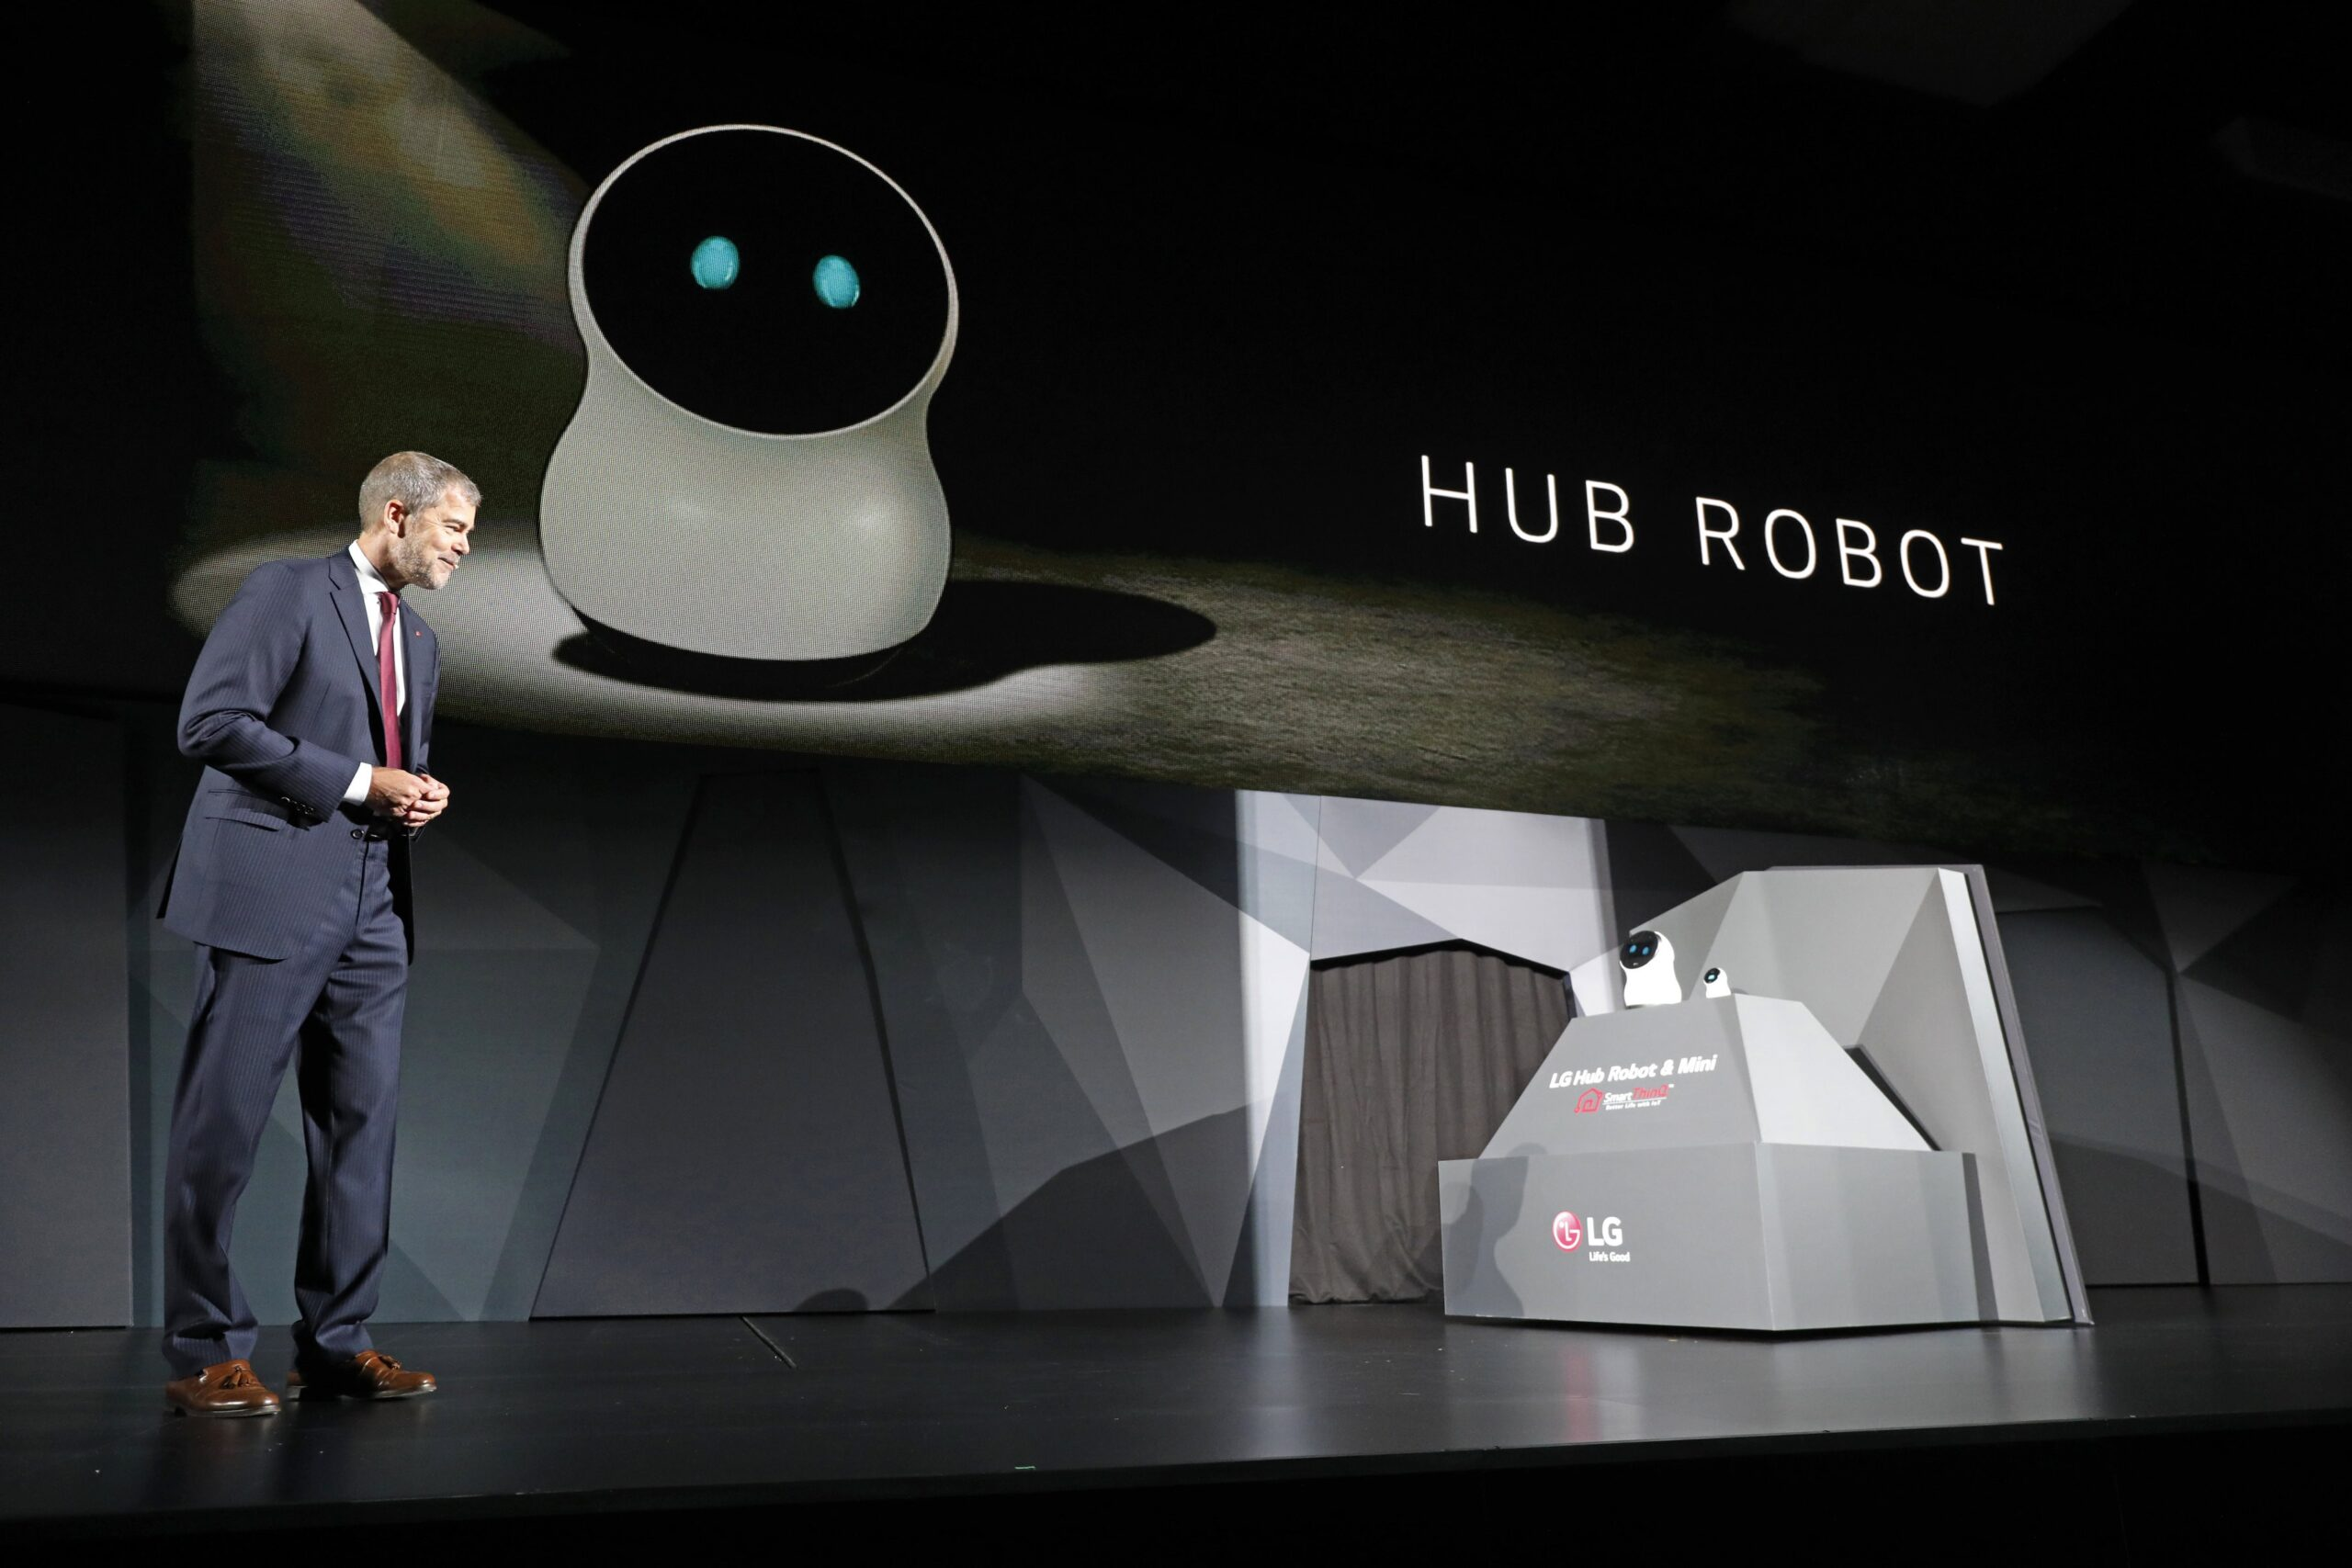 David VanderWaal, Senior Vice President, Marketing, LG Electronics interacts with LG's CLOi Hub Robot at its CES 2017 Press Conference.